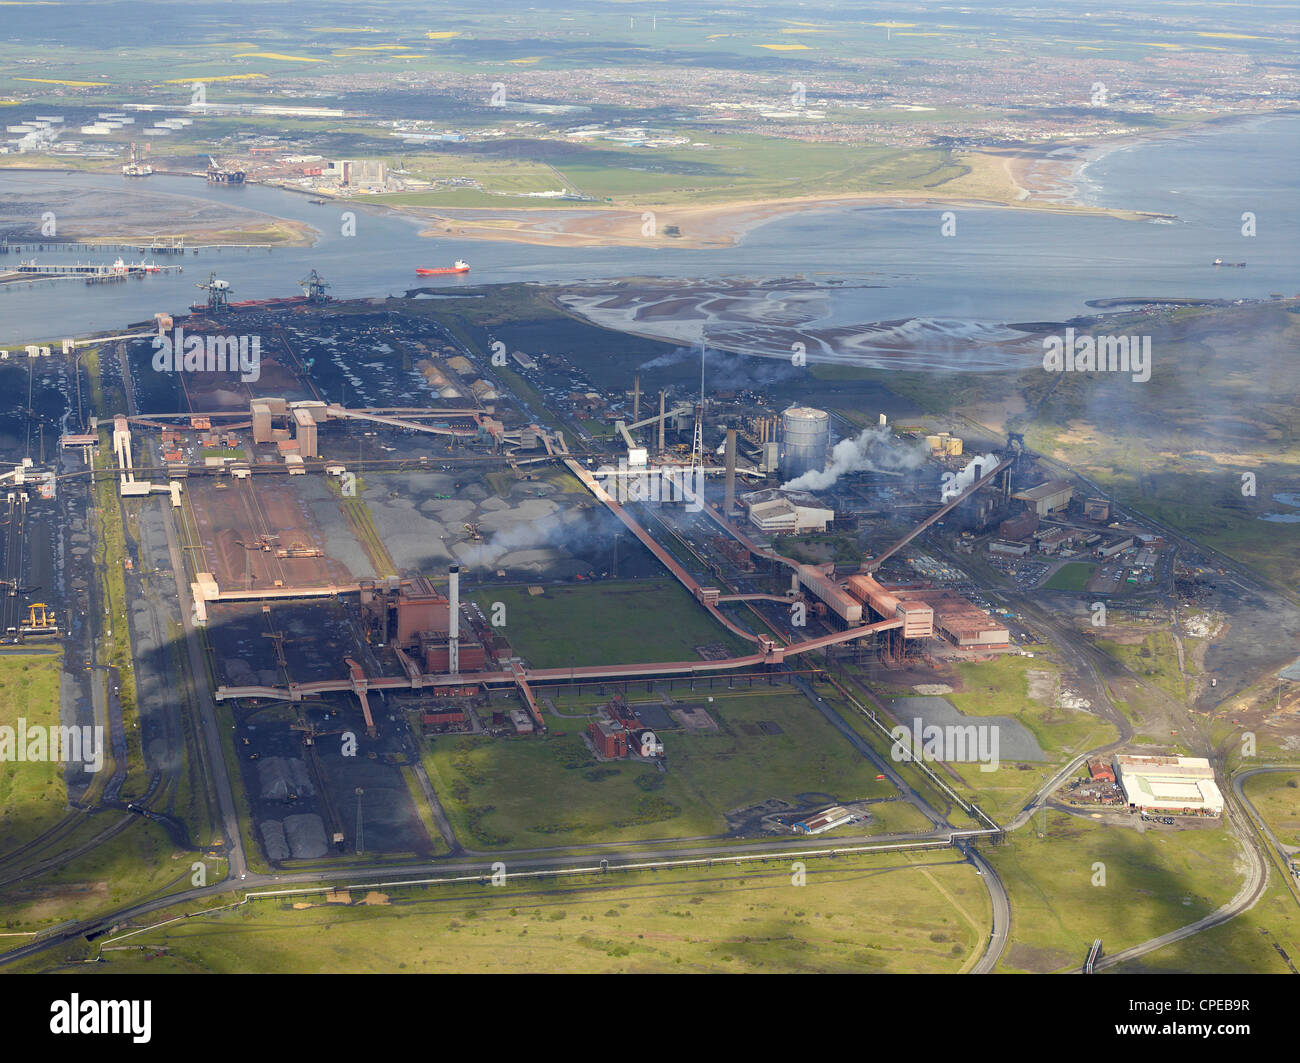 SSI/ ex Corus SteelworksTeeside from the Air, North East England, May 2012 Stock Photo